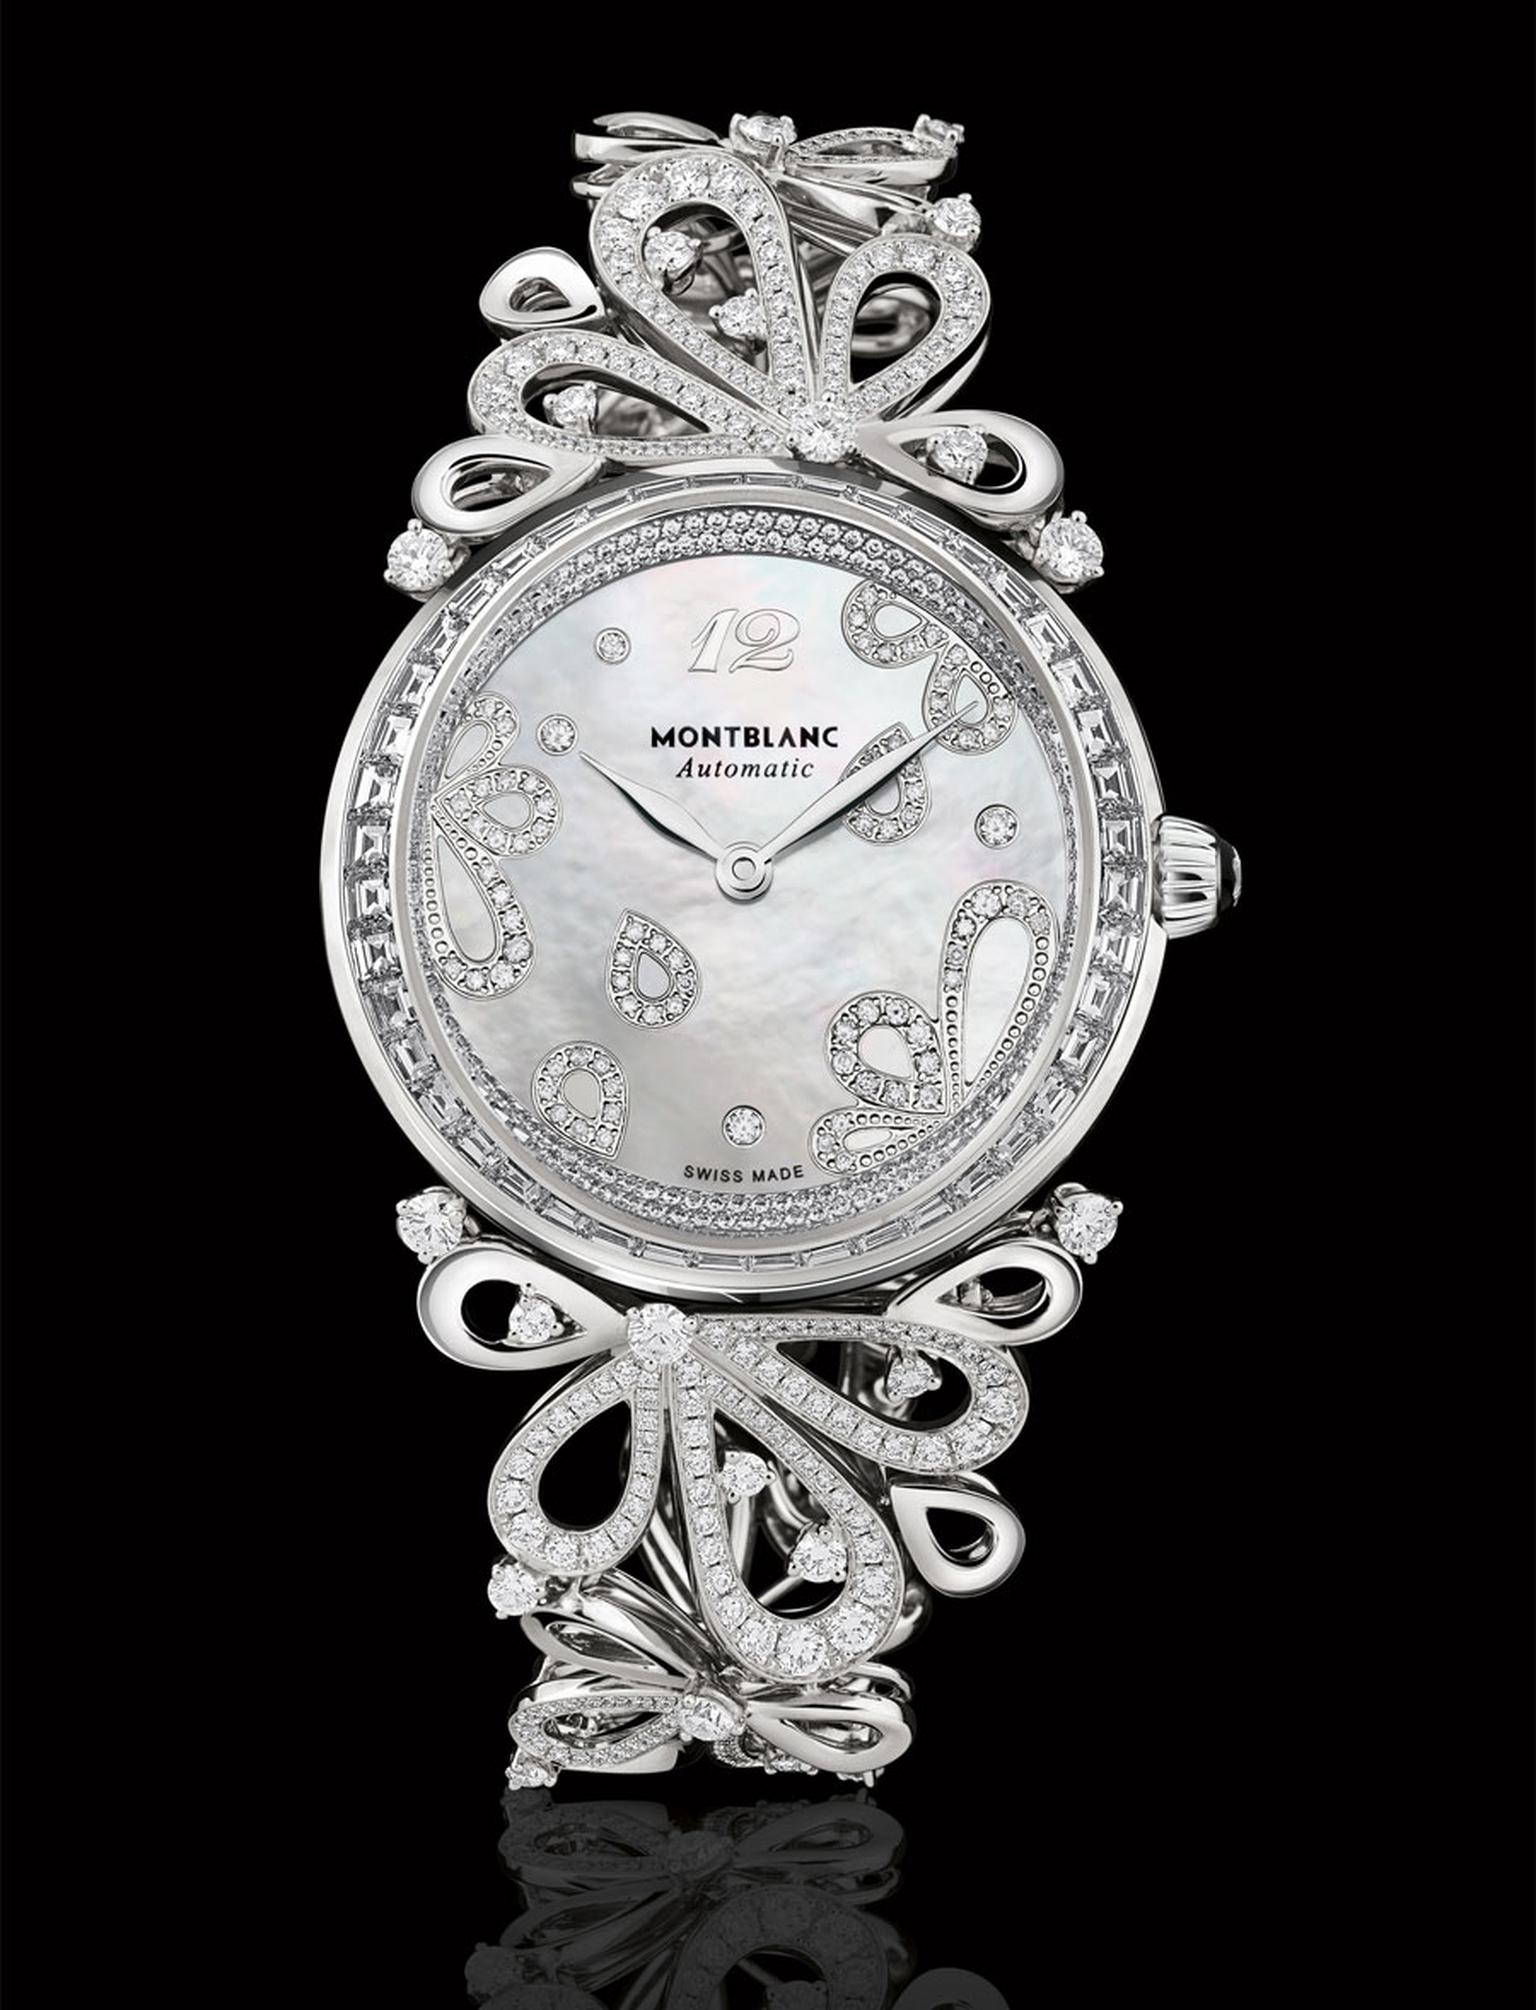 Monaco-Collection-Princesse-Grace-de-Monaco_Petales-de-Roses_white-gold_mood